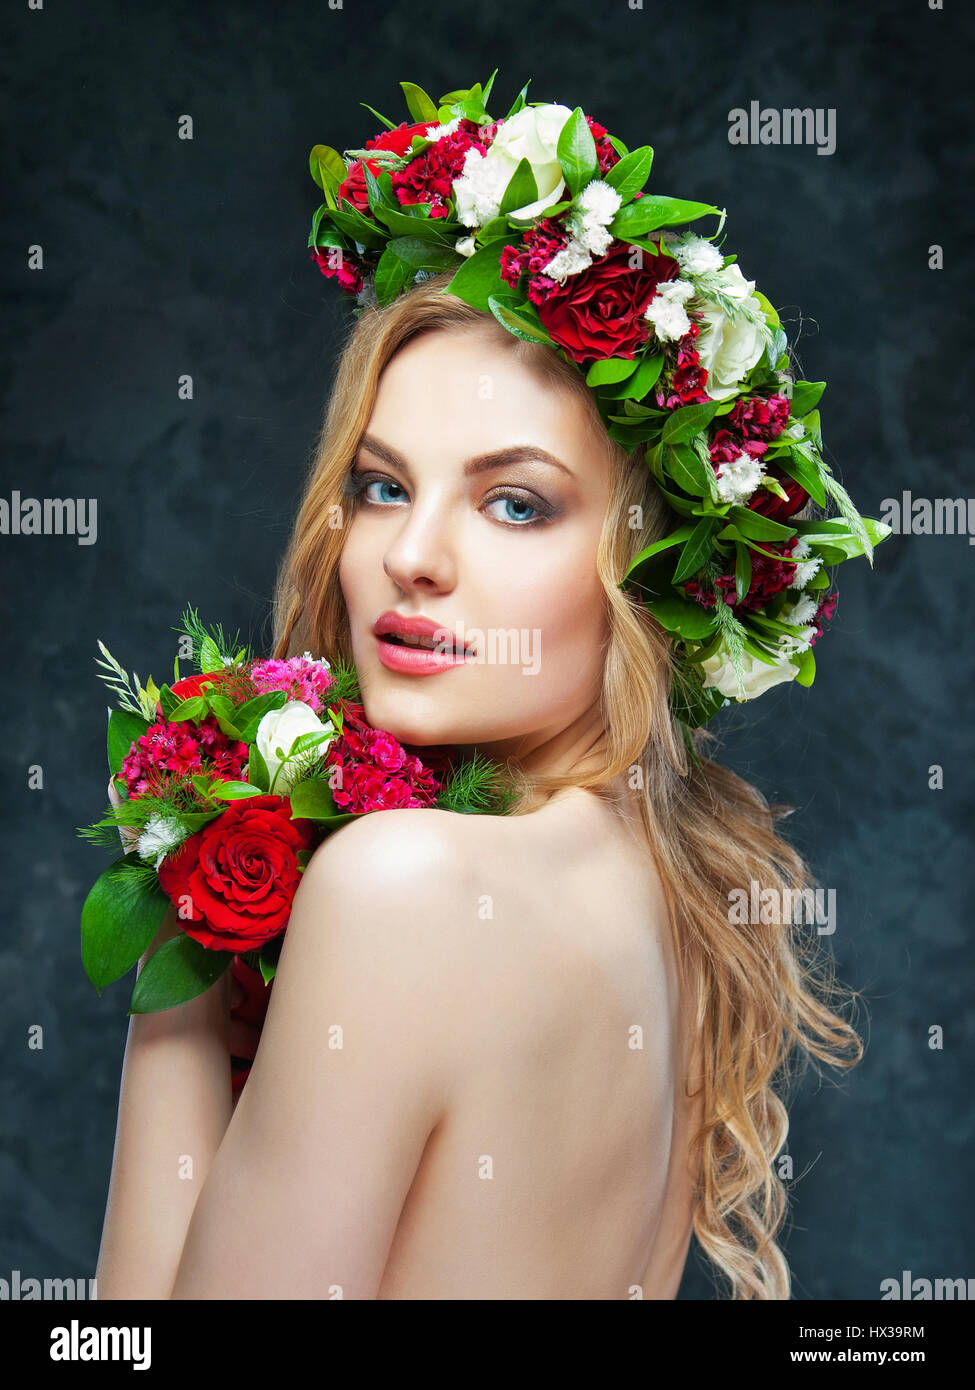 Portrait of a beautiful blonde girl with a composition of flowers portrait of a beautiful blonde girl with a composition of flowers izmirmasajfo